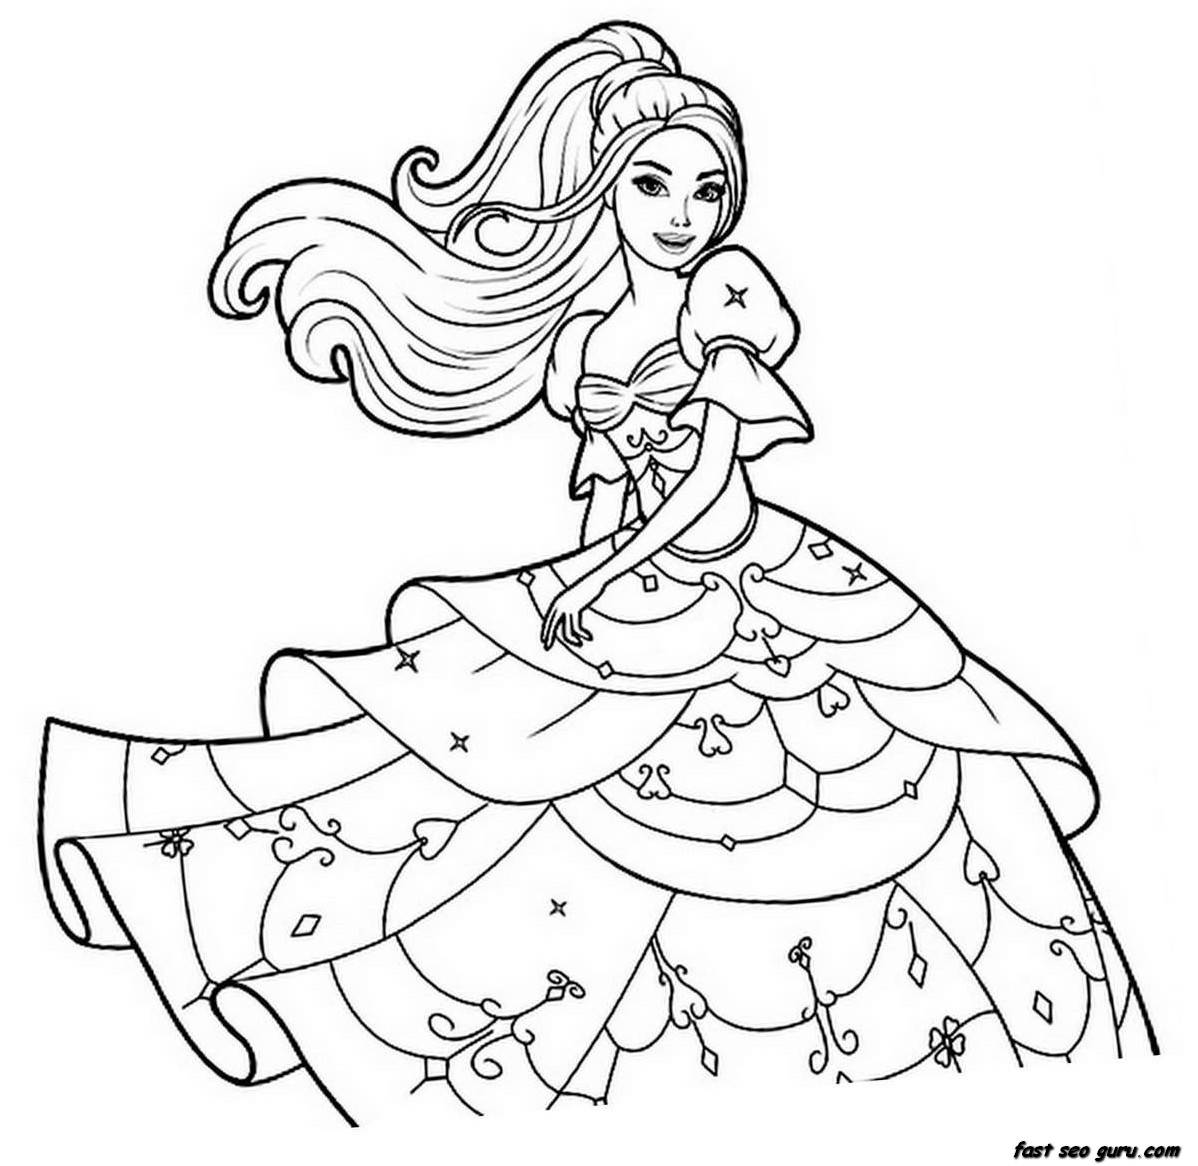 coloring pages for girls | Only Coloring Pages